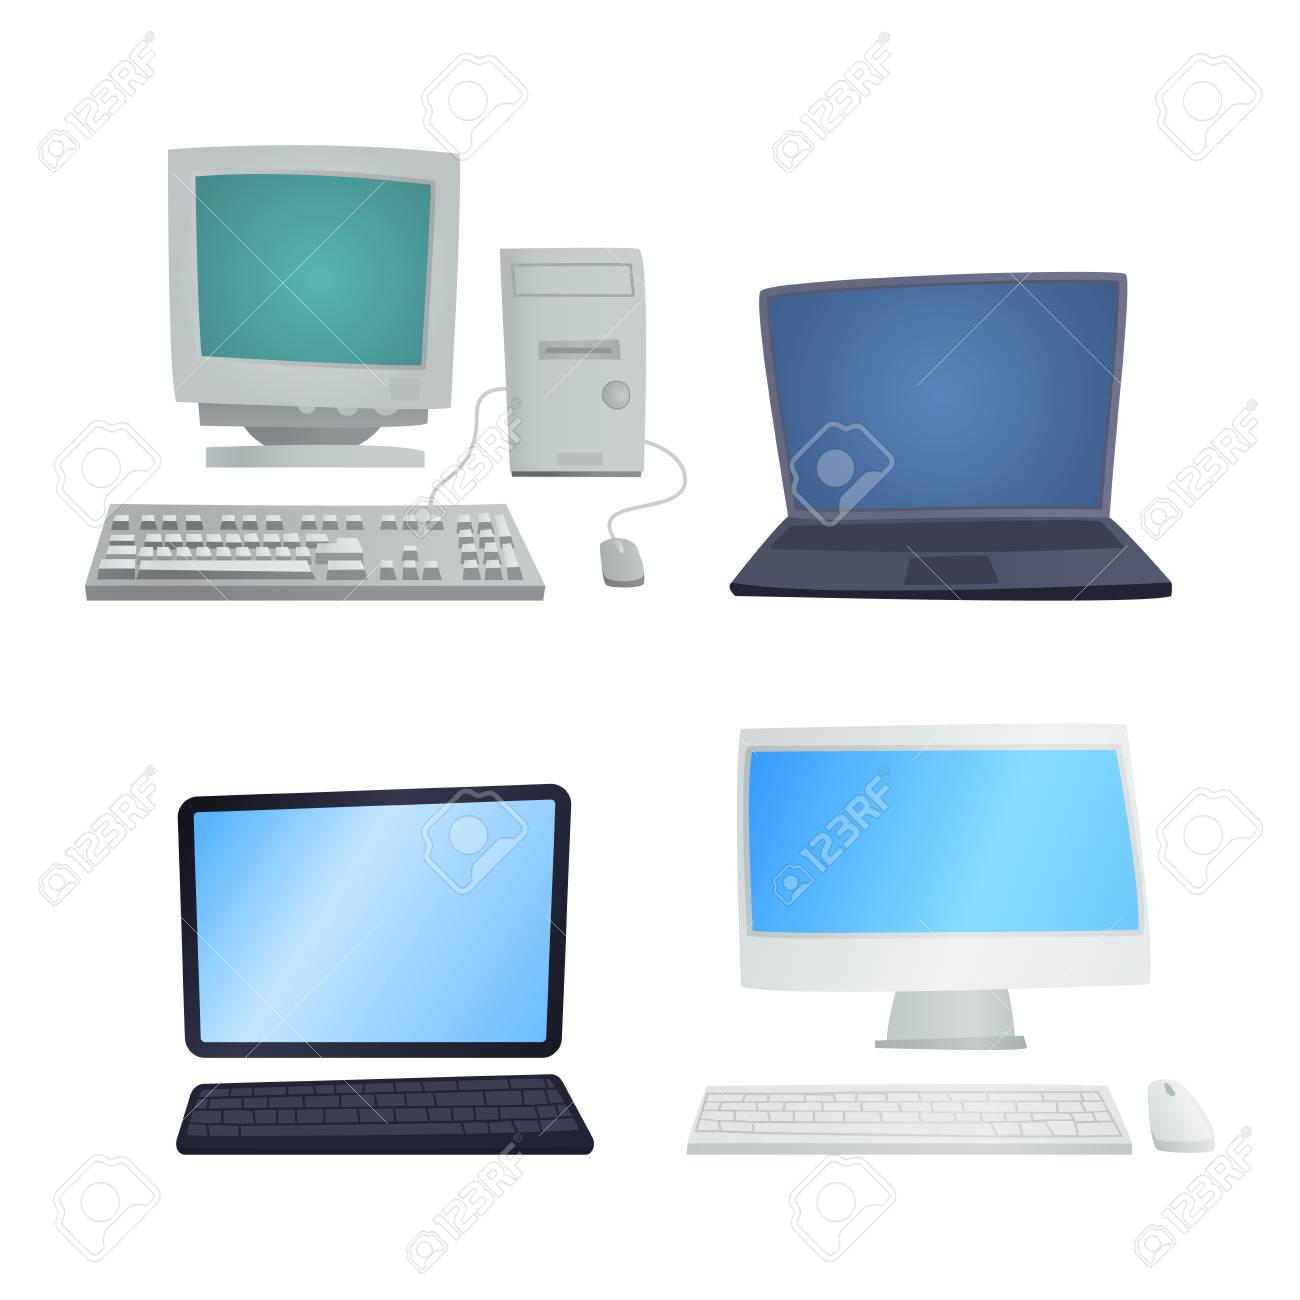 Retro computer item classic antique technology style business